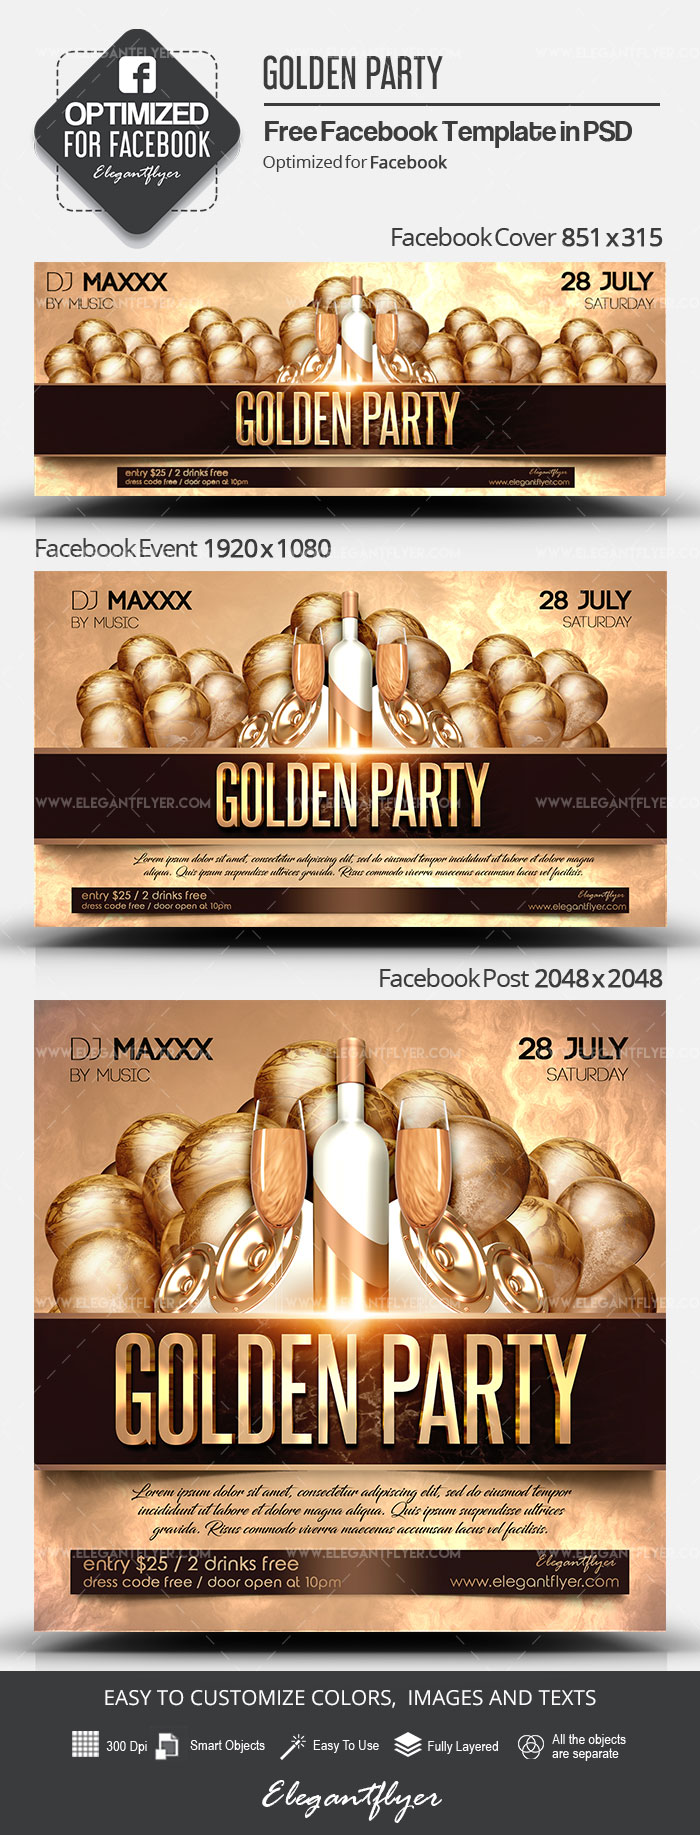 Golden Party – Free Facebook Cover Template in PSD + Post + Event cover